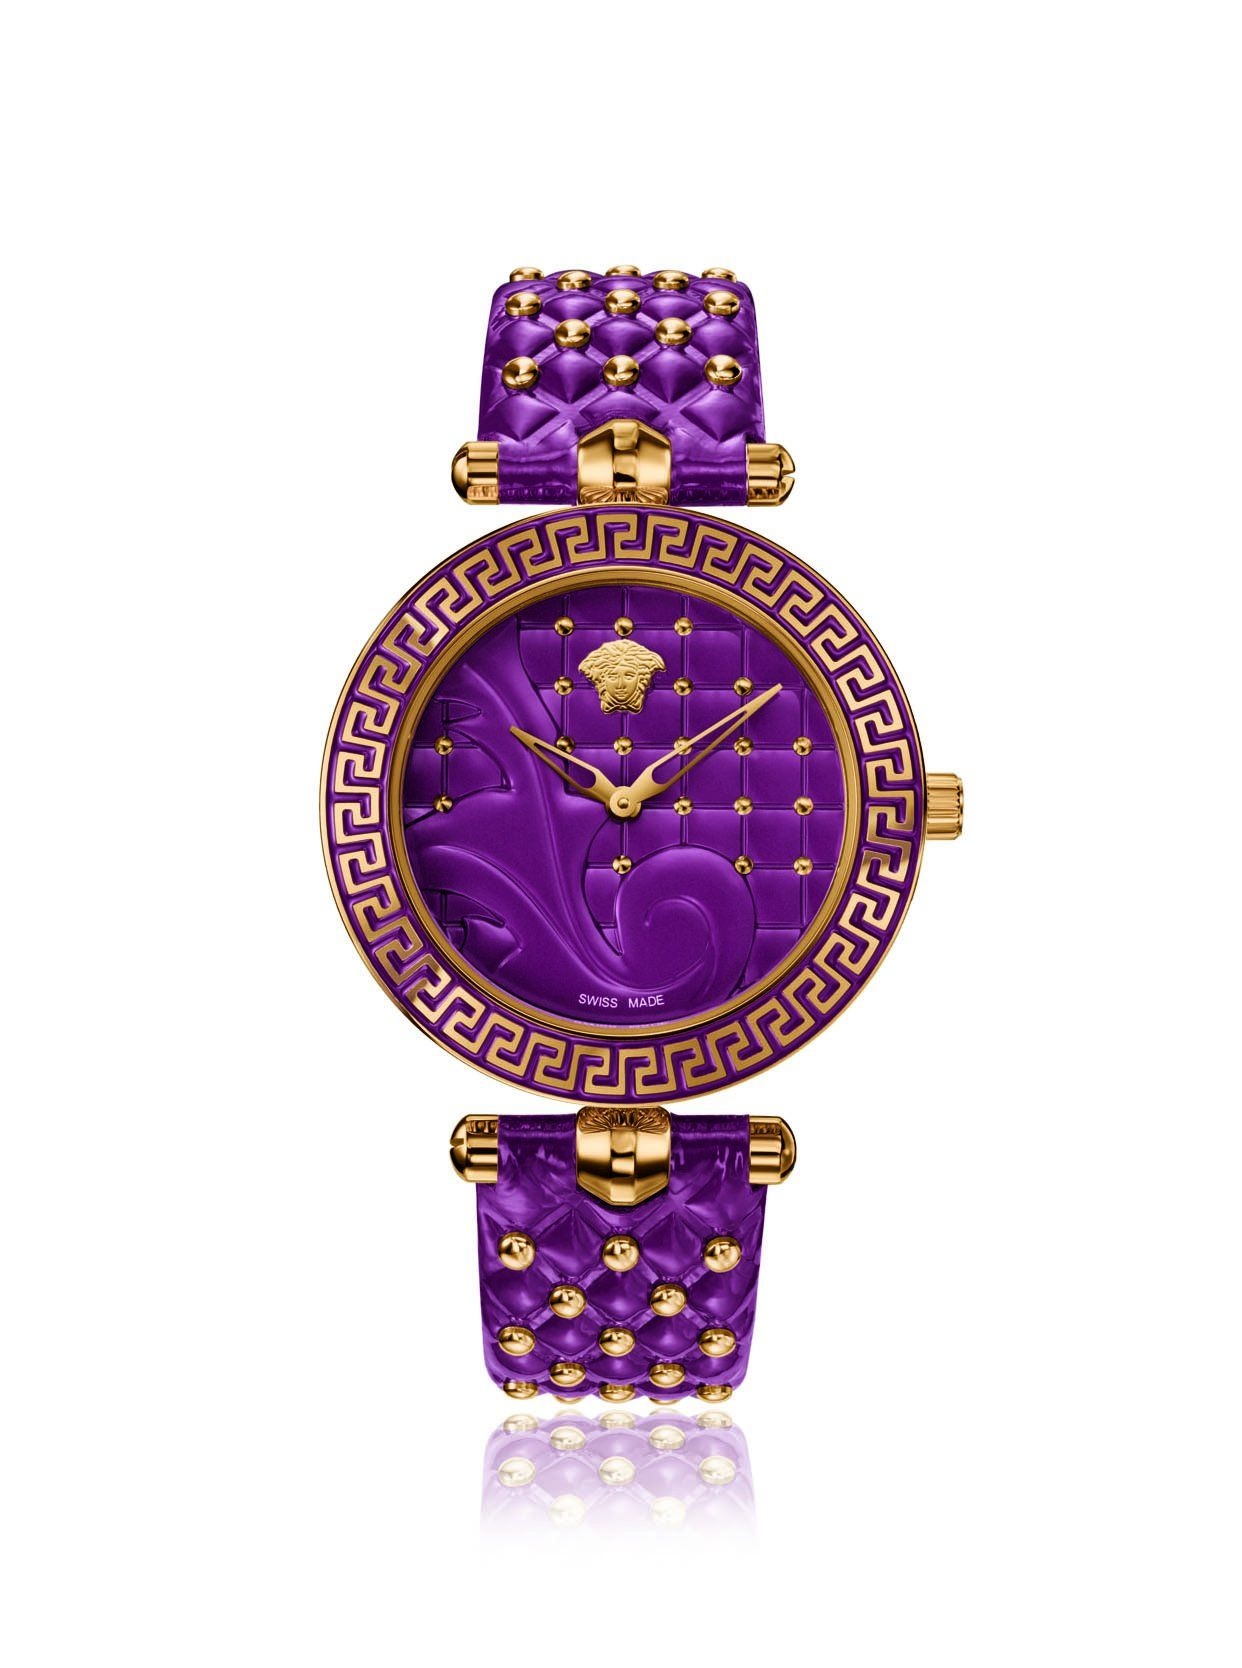 e088835e4f7 Versace Women's VK7120014 Vanitas Purple Leather Watch at MYHABIT $869 on  Amazon